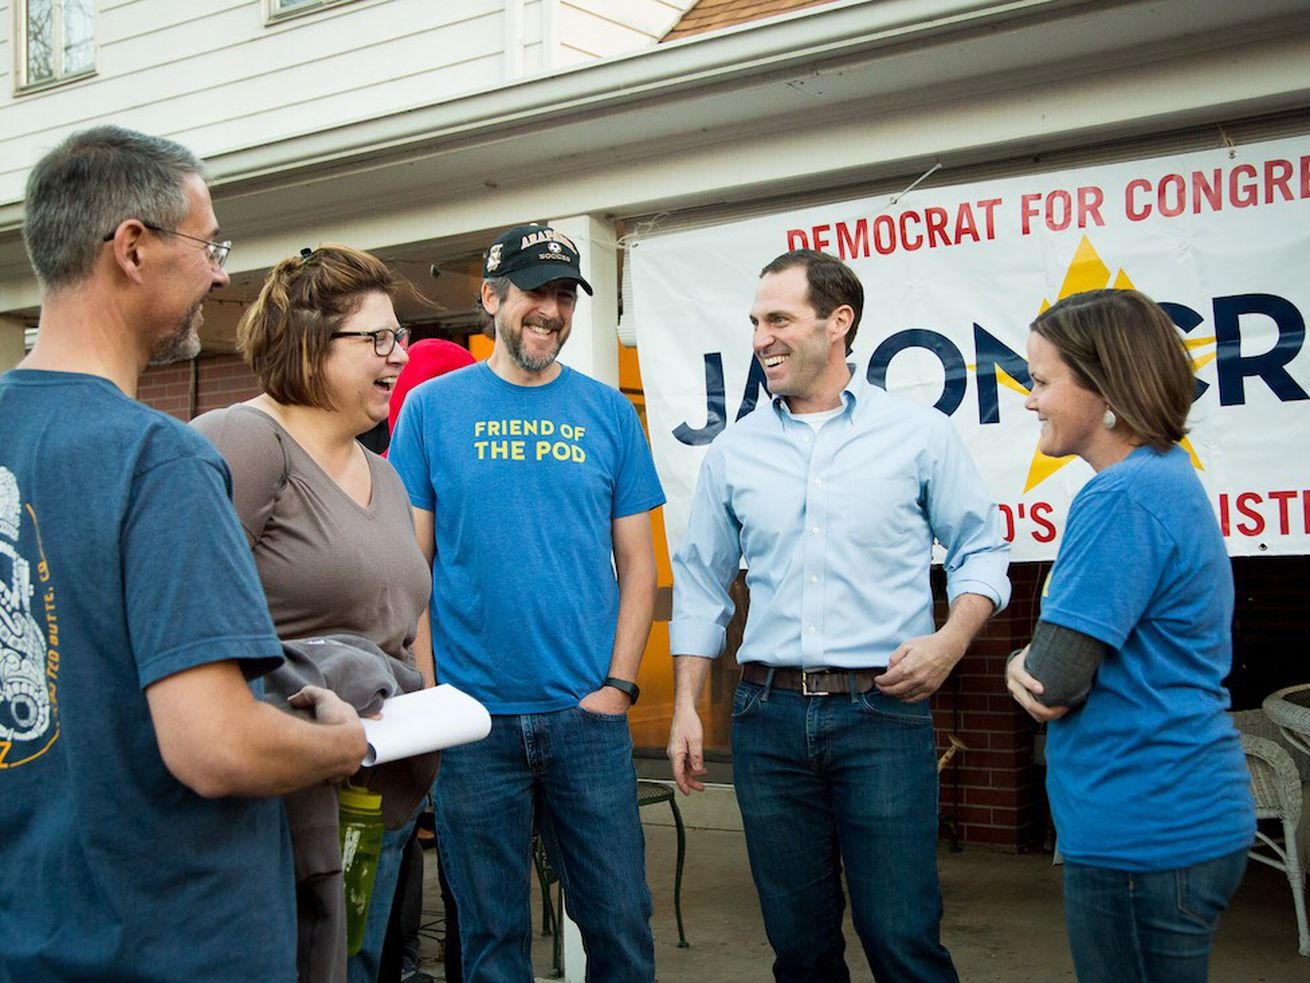 Democratic candidate Jason Crow (second from right) speaks with volunteers in Colorado's Sixth District.